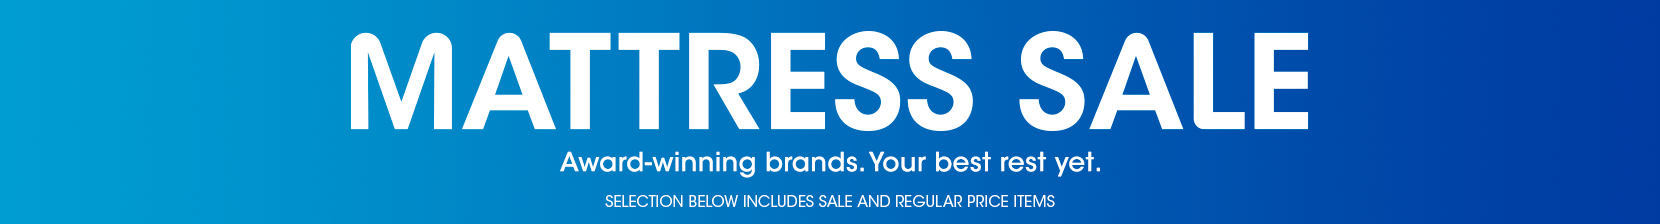 mattress sale. award winning brands. your best rest yet. selection below includes sale and regular price items